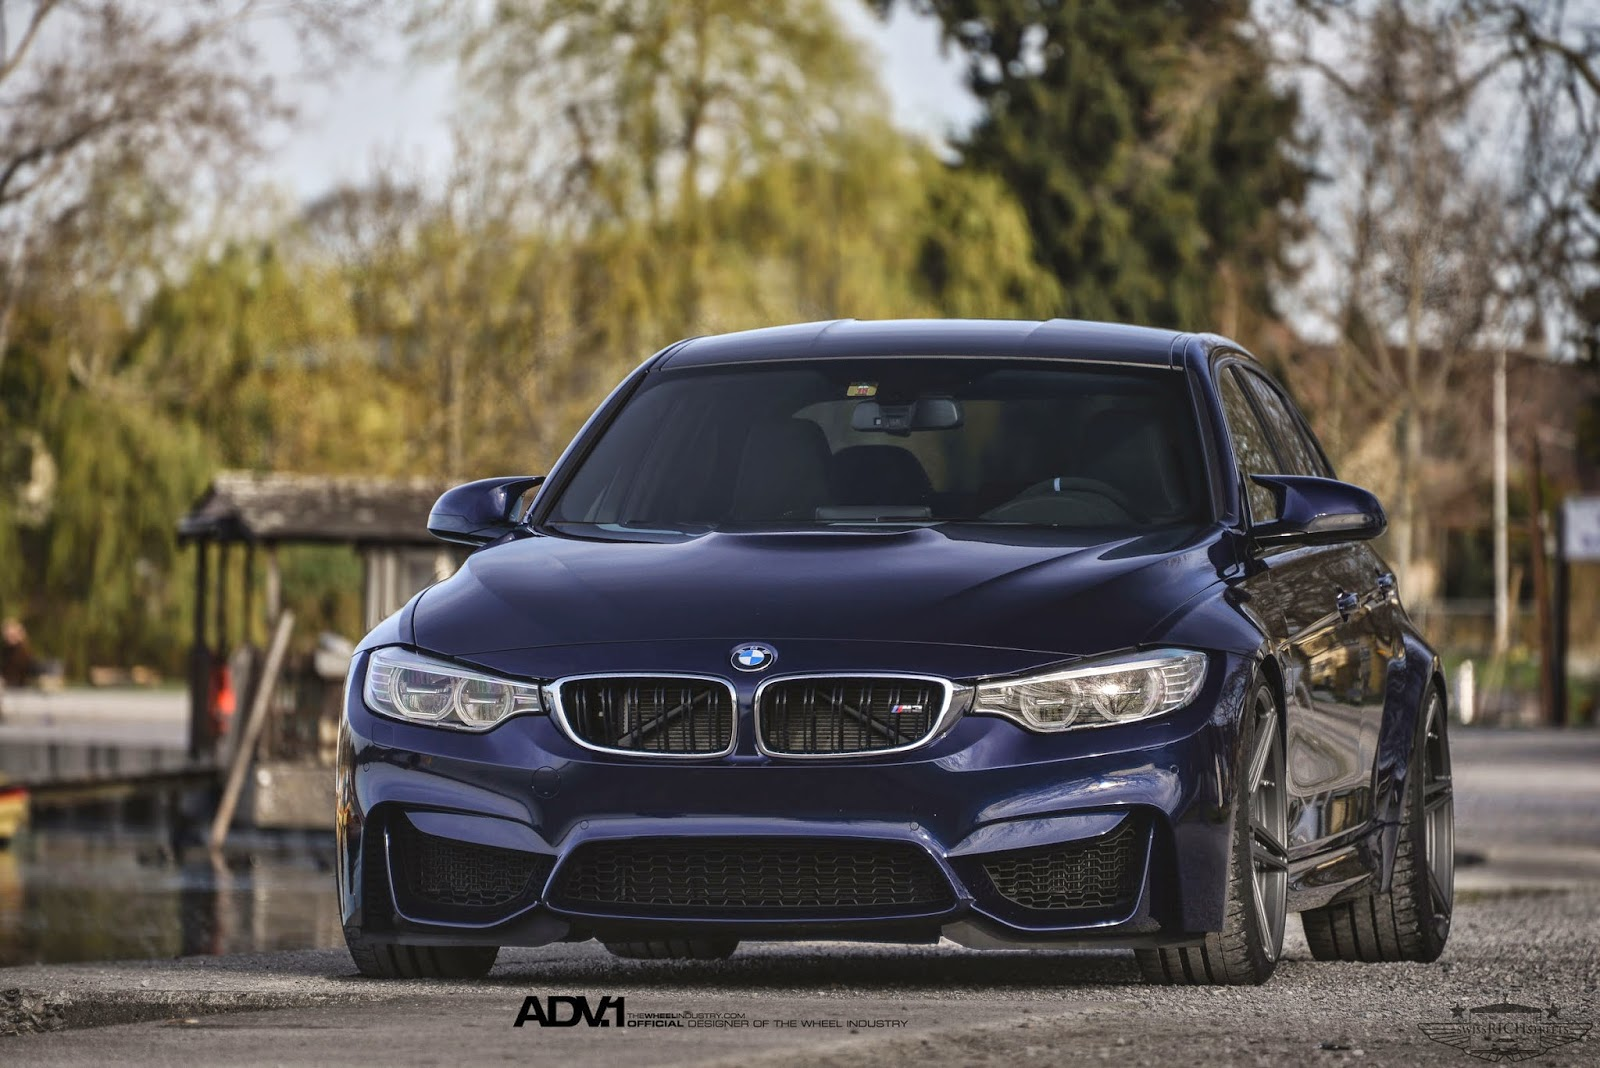 BMW-F80-M3-On-ADV05-MV2-By-ADV.1-Wheels-02.jpg